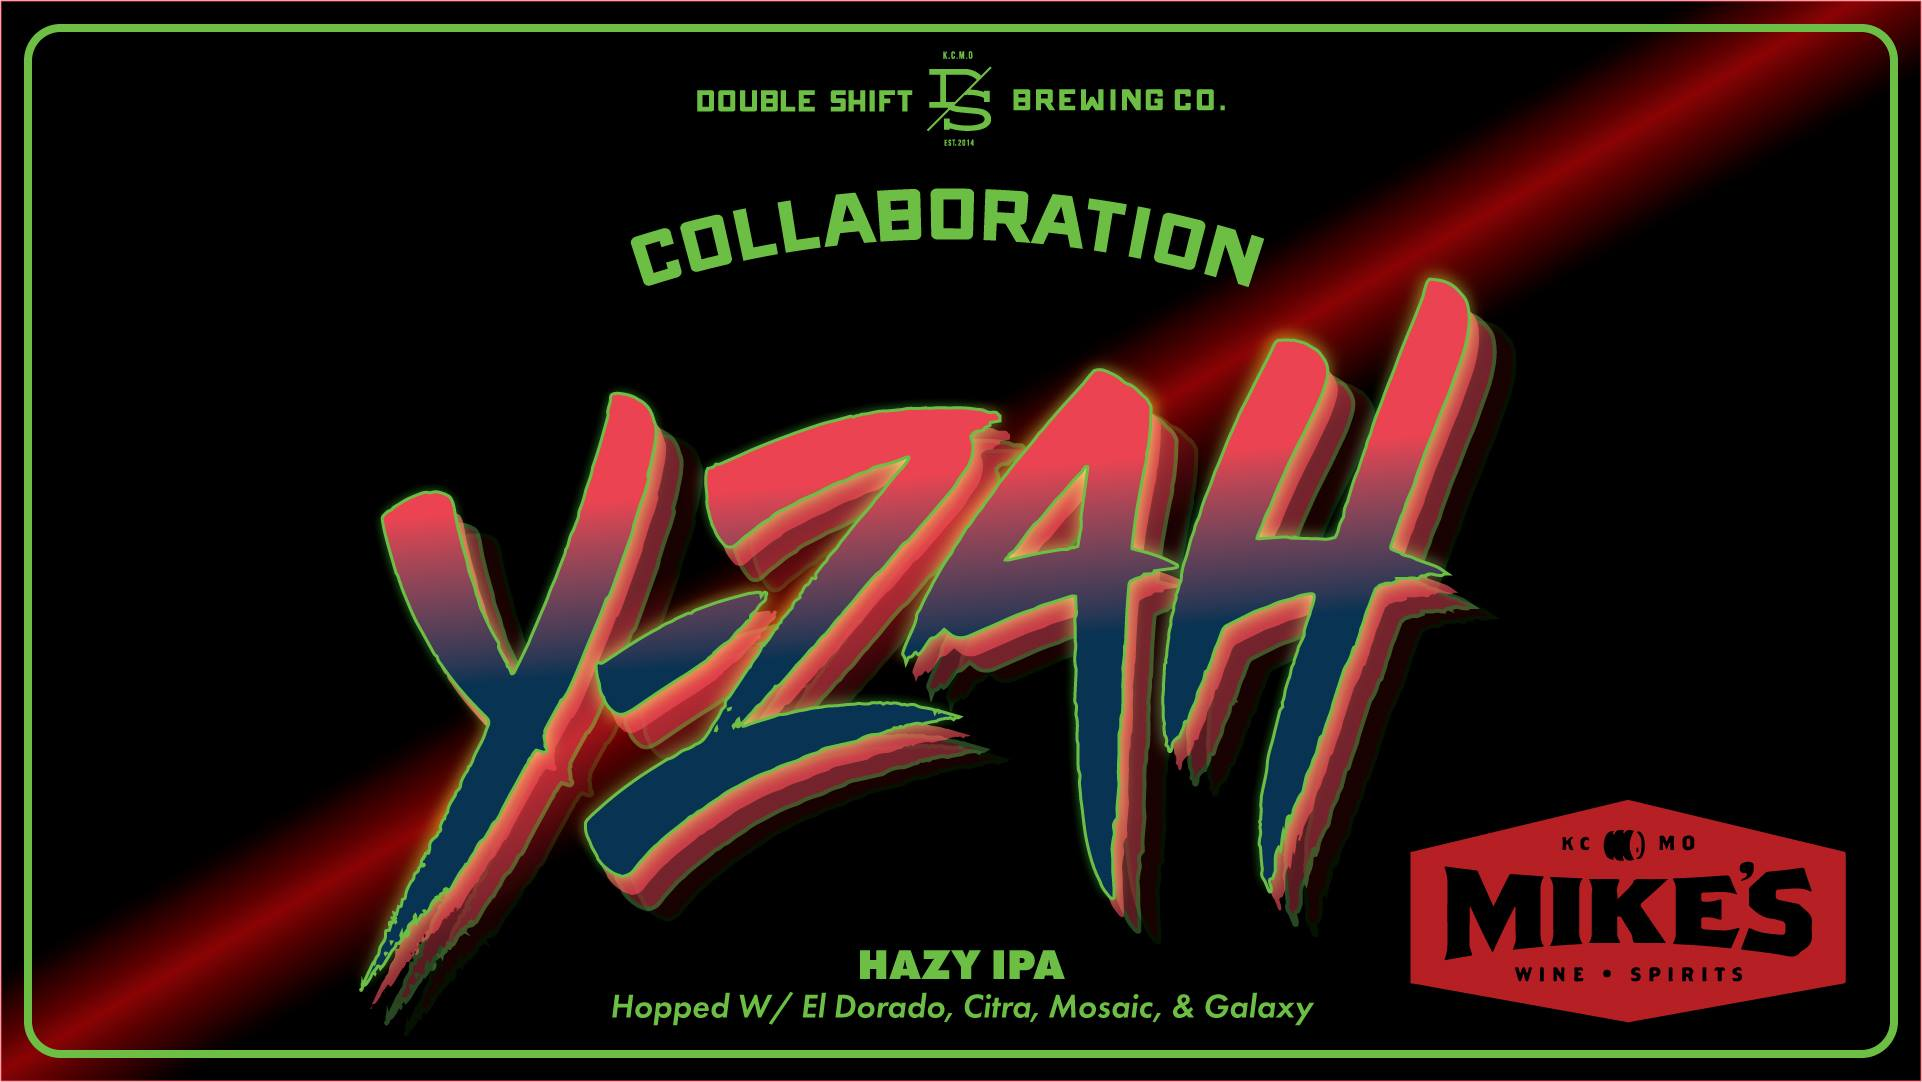 Y-Zah is a new collaboration IPA